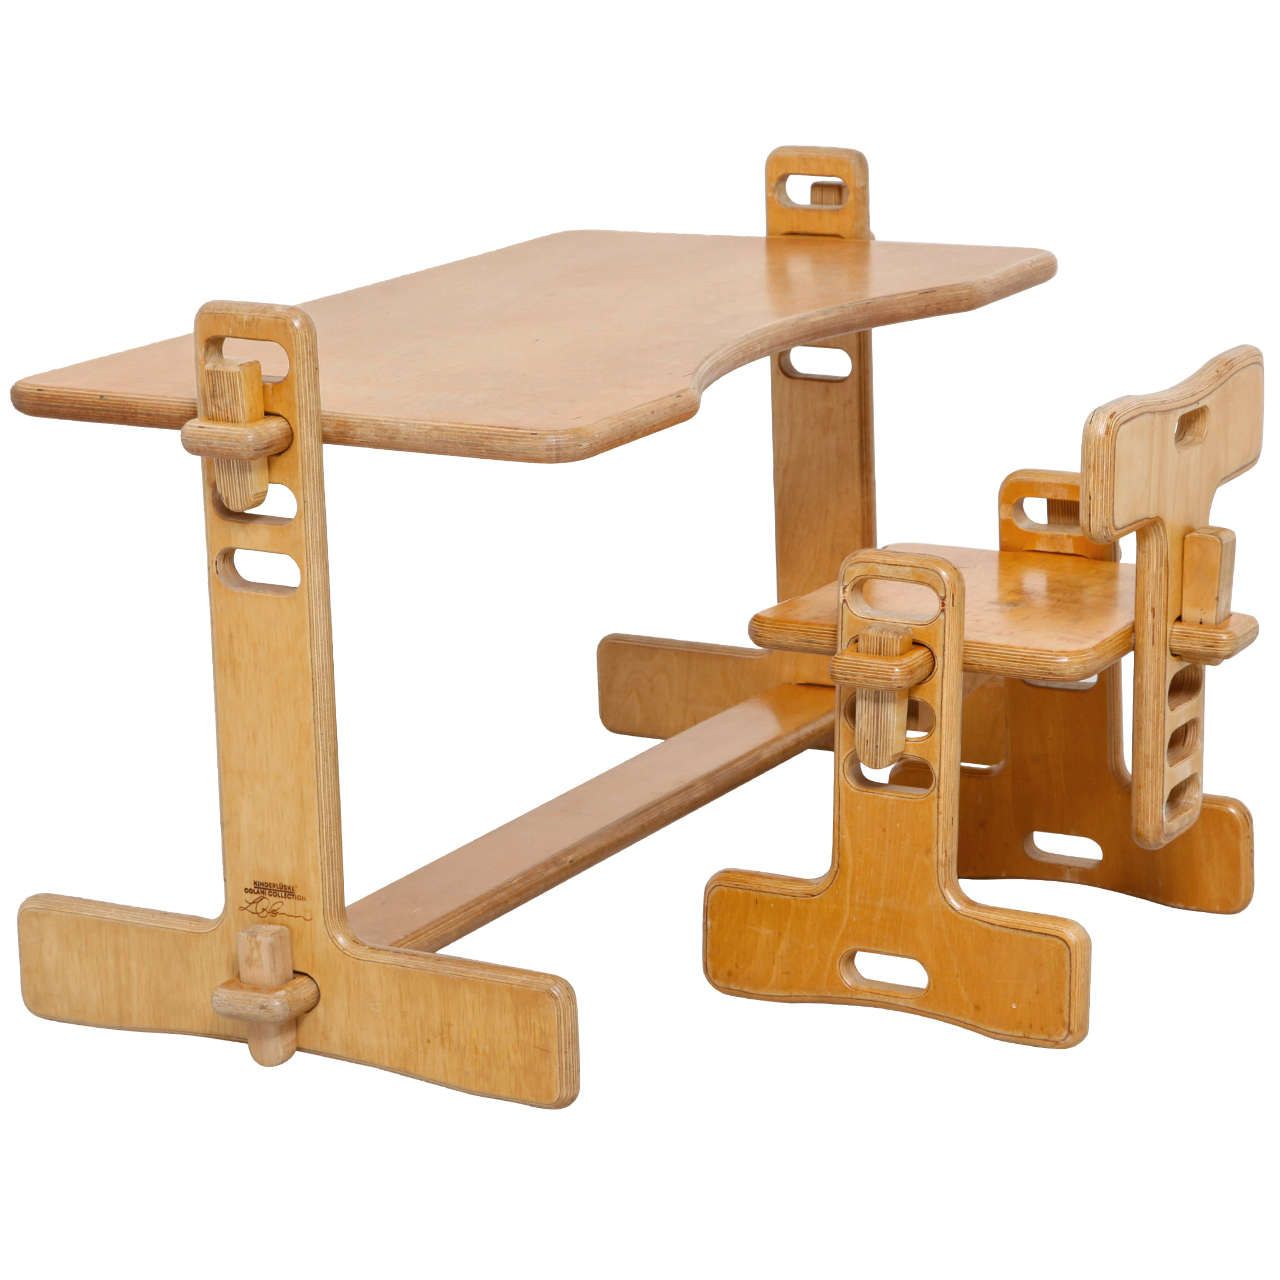 Ihram Kids For Sale Dubai: Child's Writing Desk And Chair Designed By Luigi Colani At